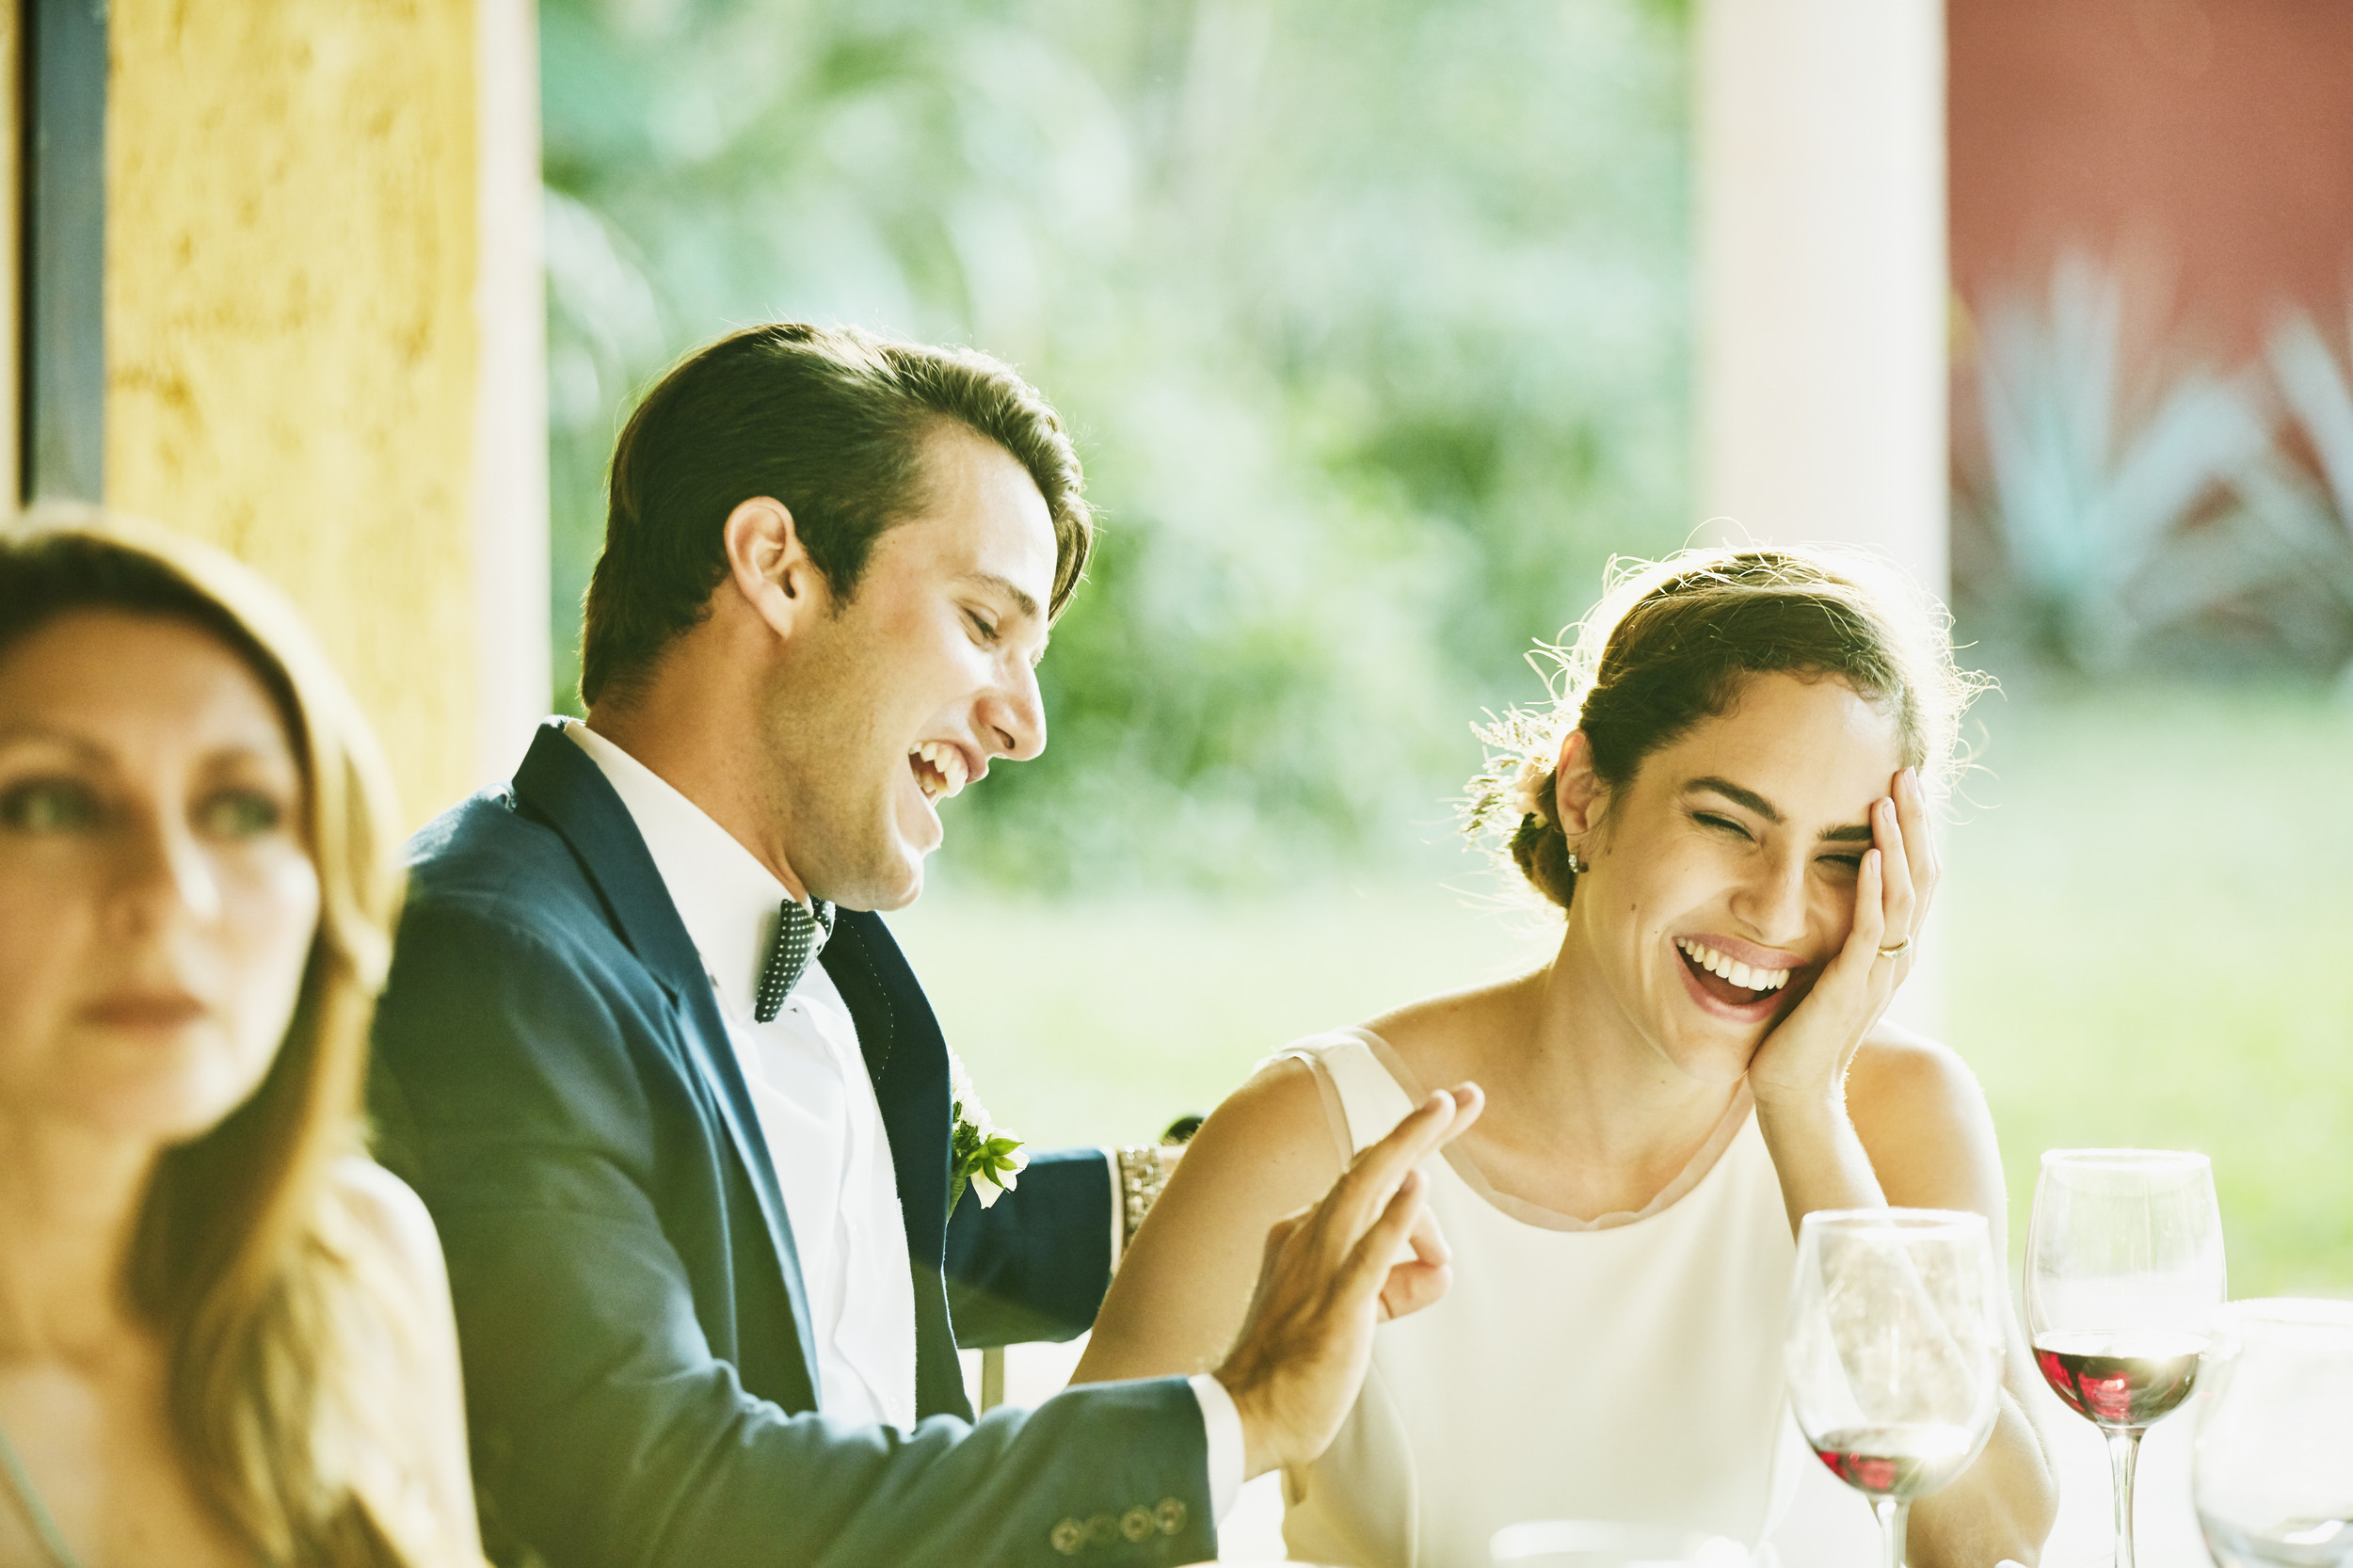 How much cash should you give for a wedding gift?